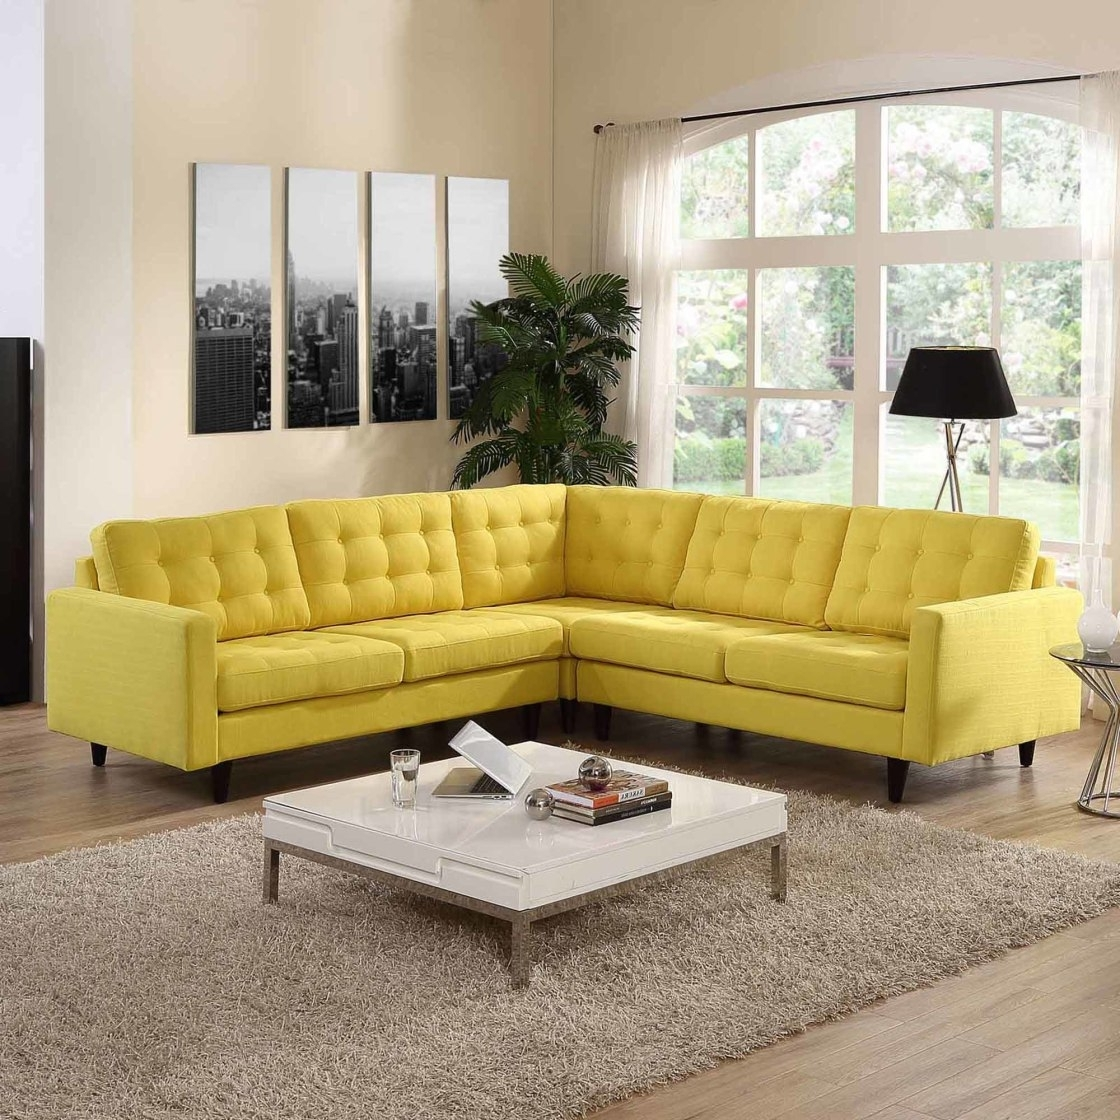 Pleasing Image Gallery Of Ventura County Sectional Sofas View 6 Of Inzonedesignstudio Interior Chair Design Inzonedesignstudiocom